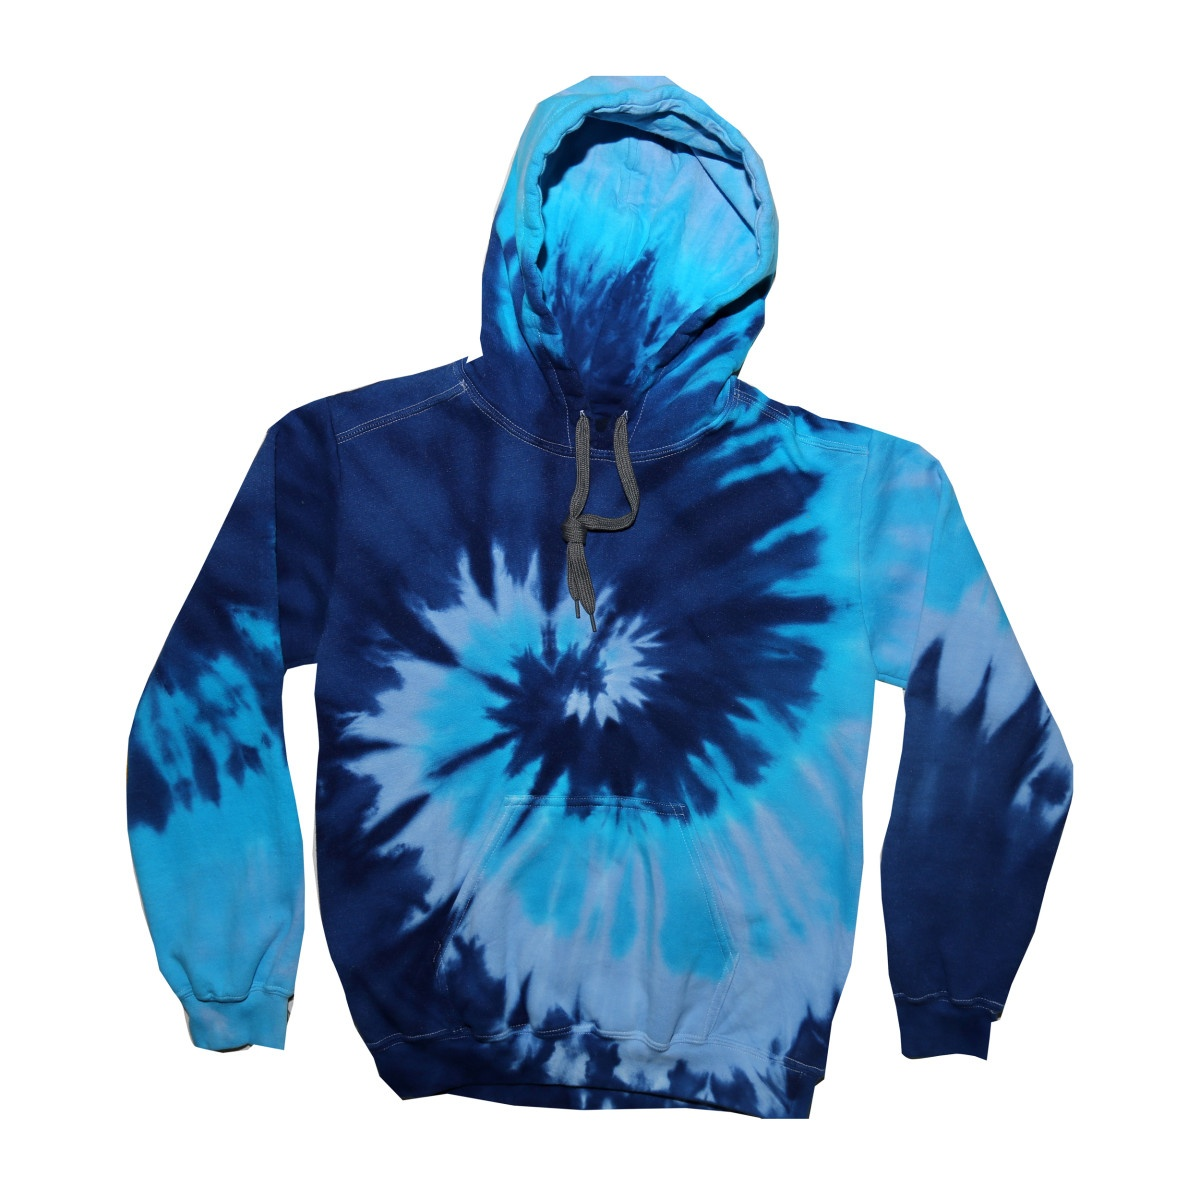 Men's Clothing Styles, include T-shirts, Athletic Fit T-Shirts, Long Sleeve T-Shirts, Hoodies, Jackets, Board Shorts and Unprinted Tie-Dye T-shirts.